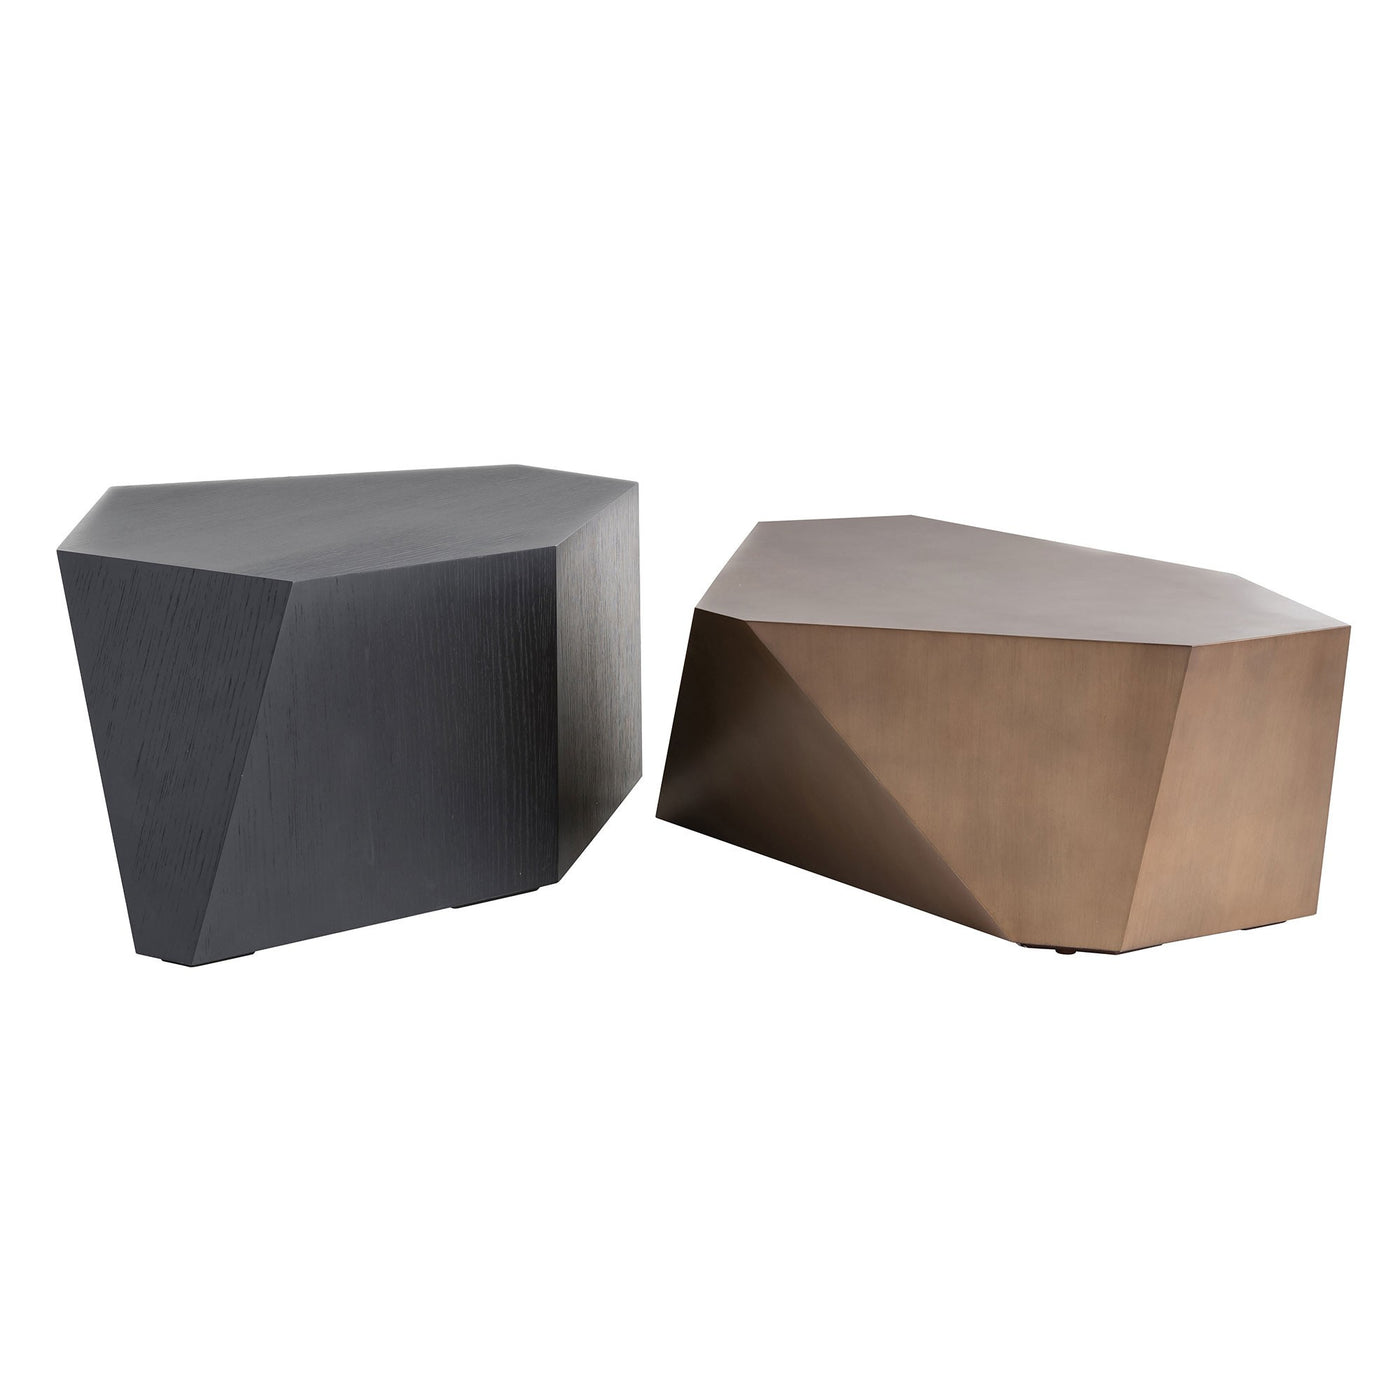 arteriors home chaka accent table set of 2 side tables, living room side table, bed side drawer, sofa side table, gold side table, brass side table, black side table, modern side table, side tables for living room, couch side table, side table for couch, bedroom side tables, accent table, DJ5012